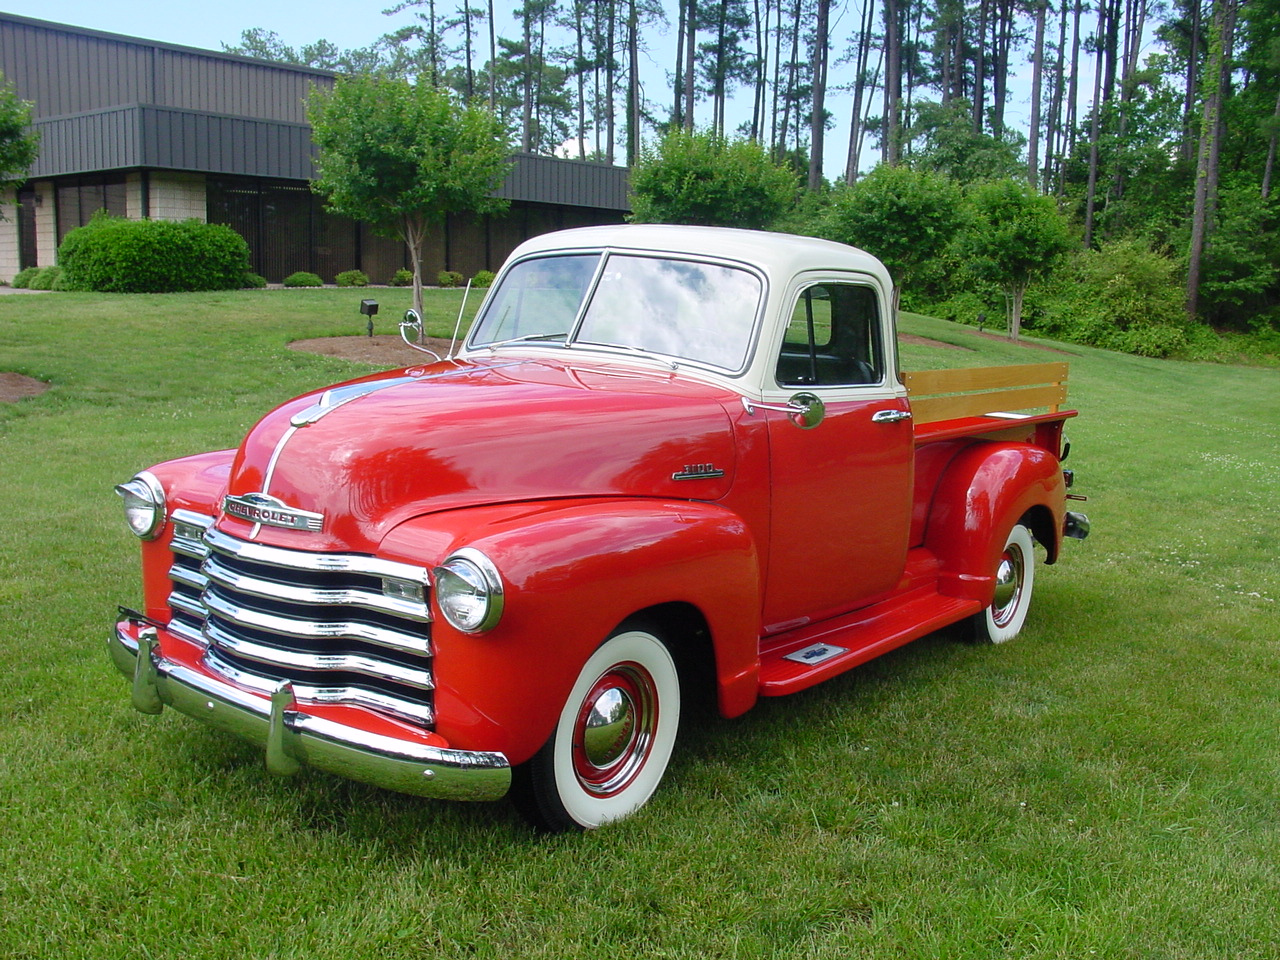 tuning cars and news 1950 chevrolet 3100 pickup. Black Bedroom Furniture Sets. Home Design Ideas